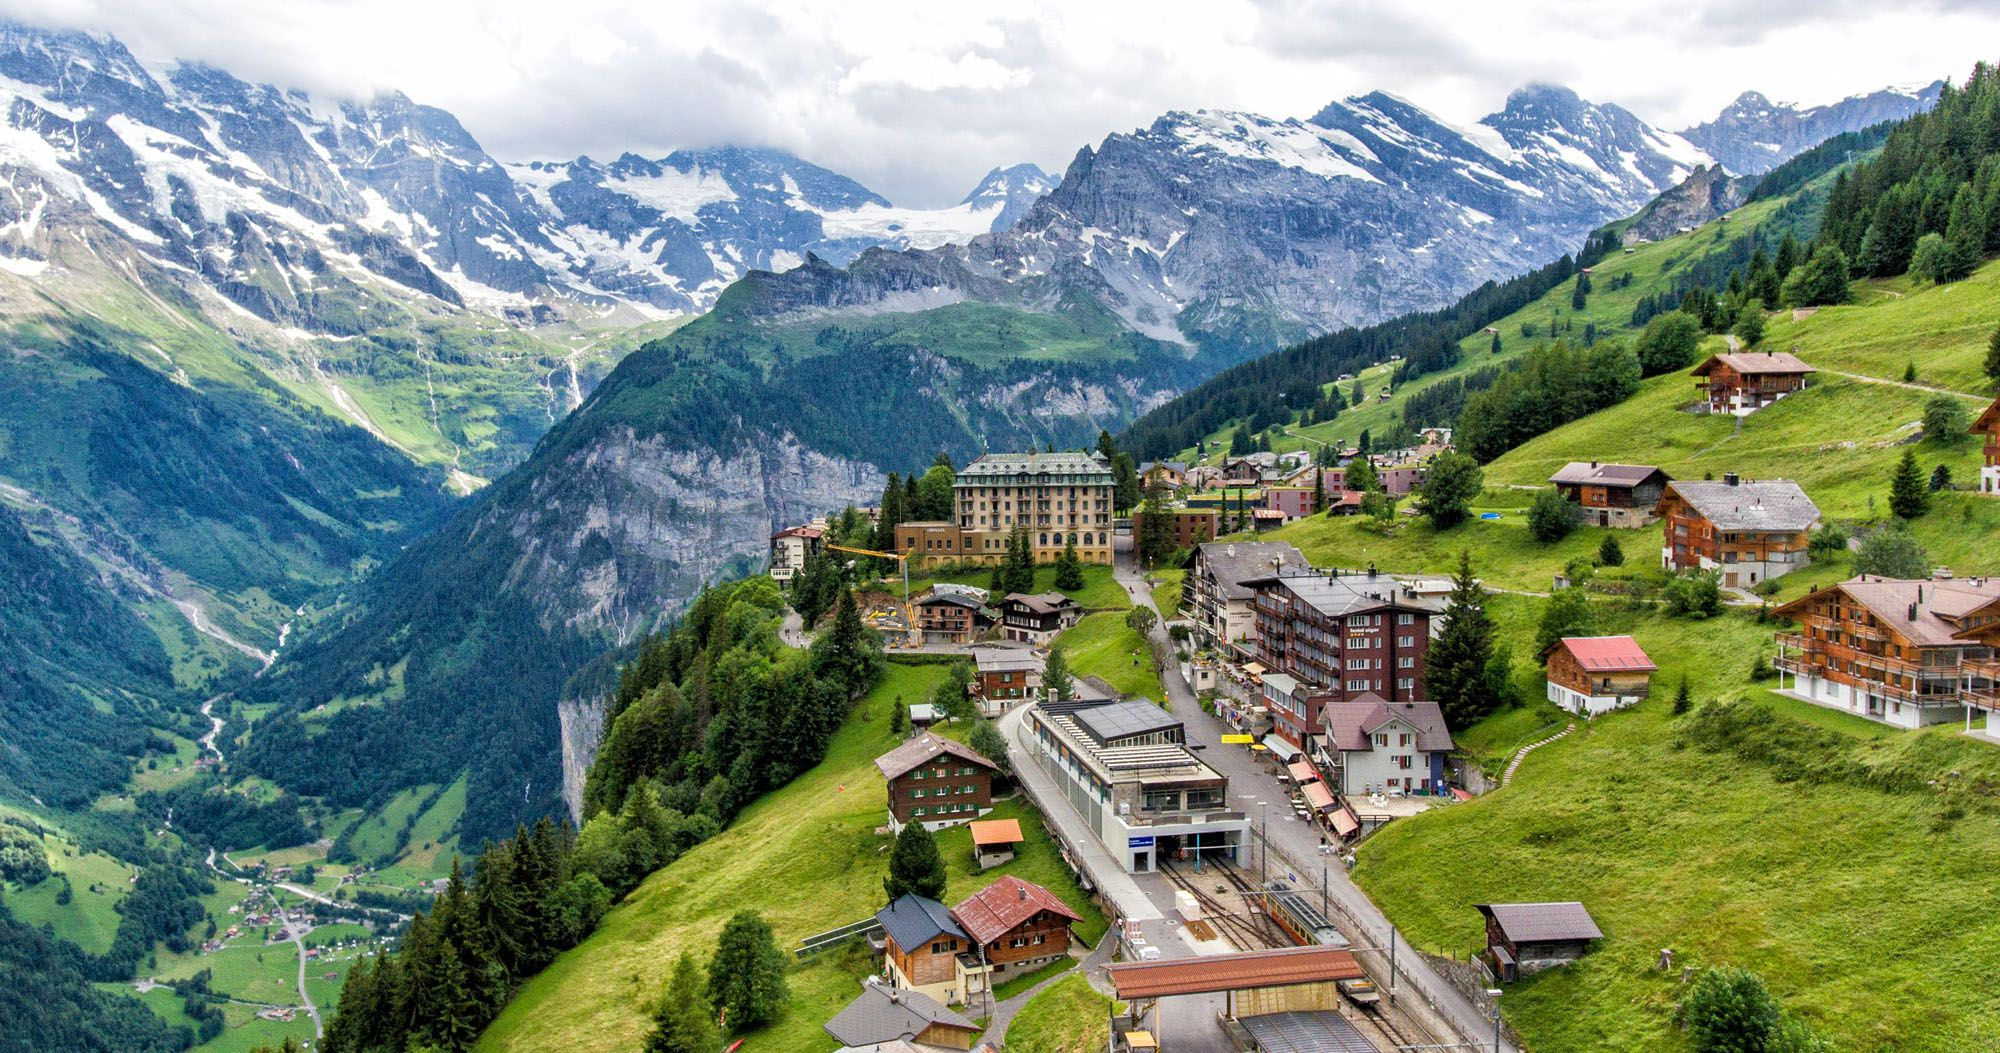 Where to Stay in the Jungfrau Region